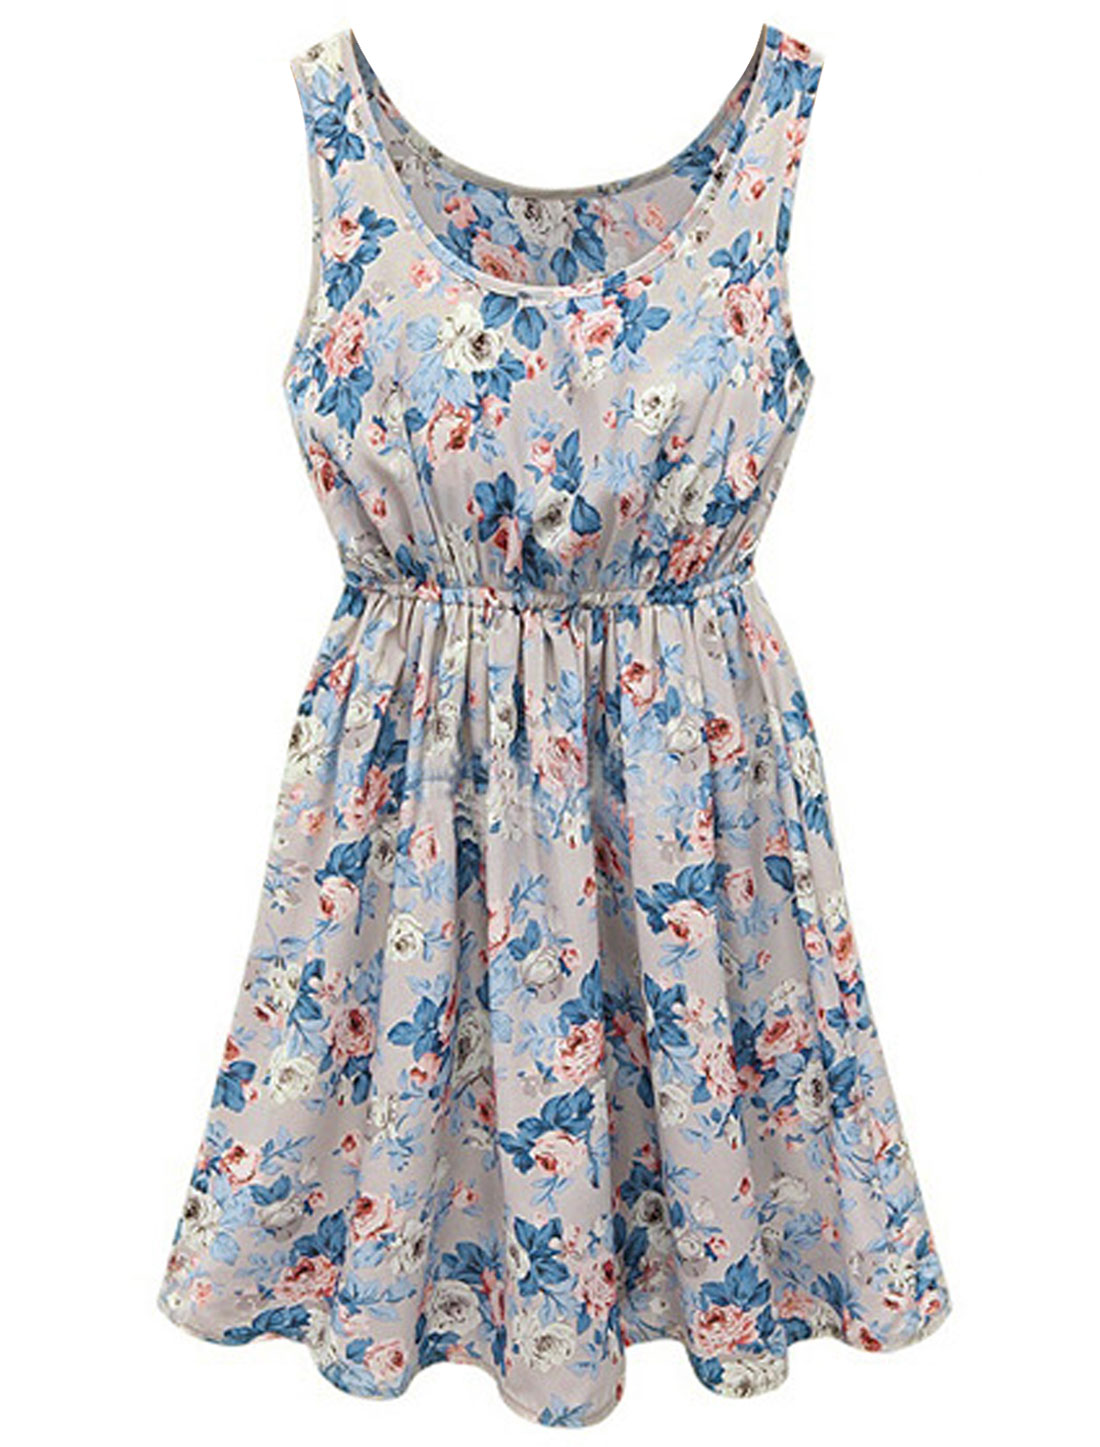 Lady Sleeveless Elastic Waist Floral Prints Fully Lined Dress Cool Gray M